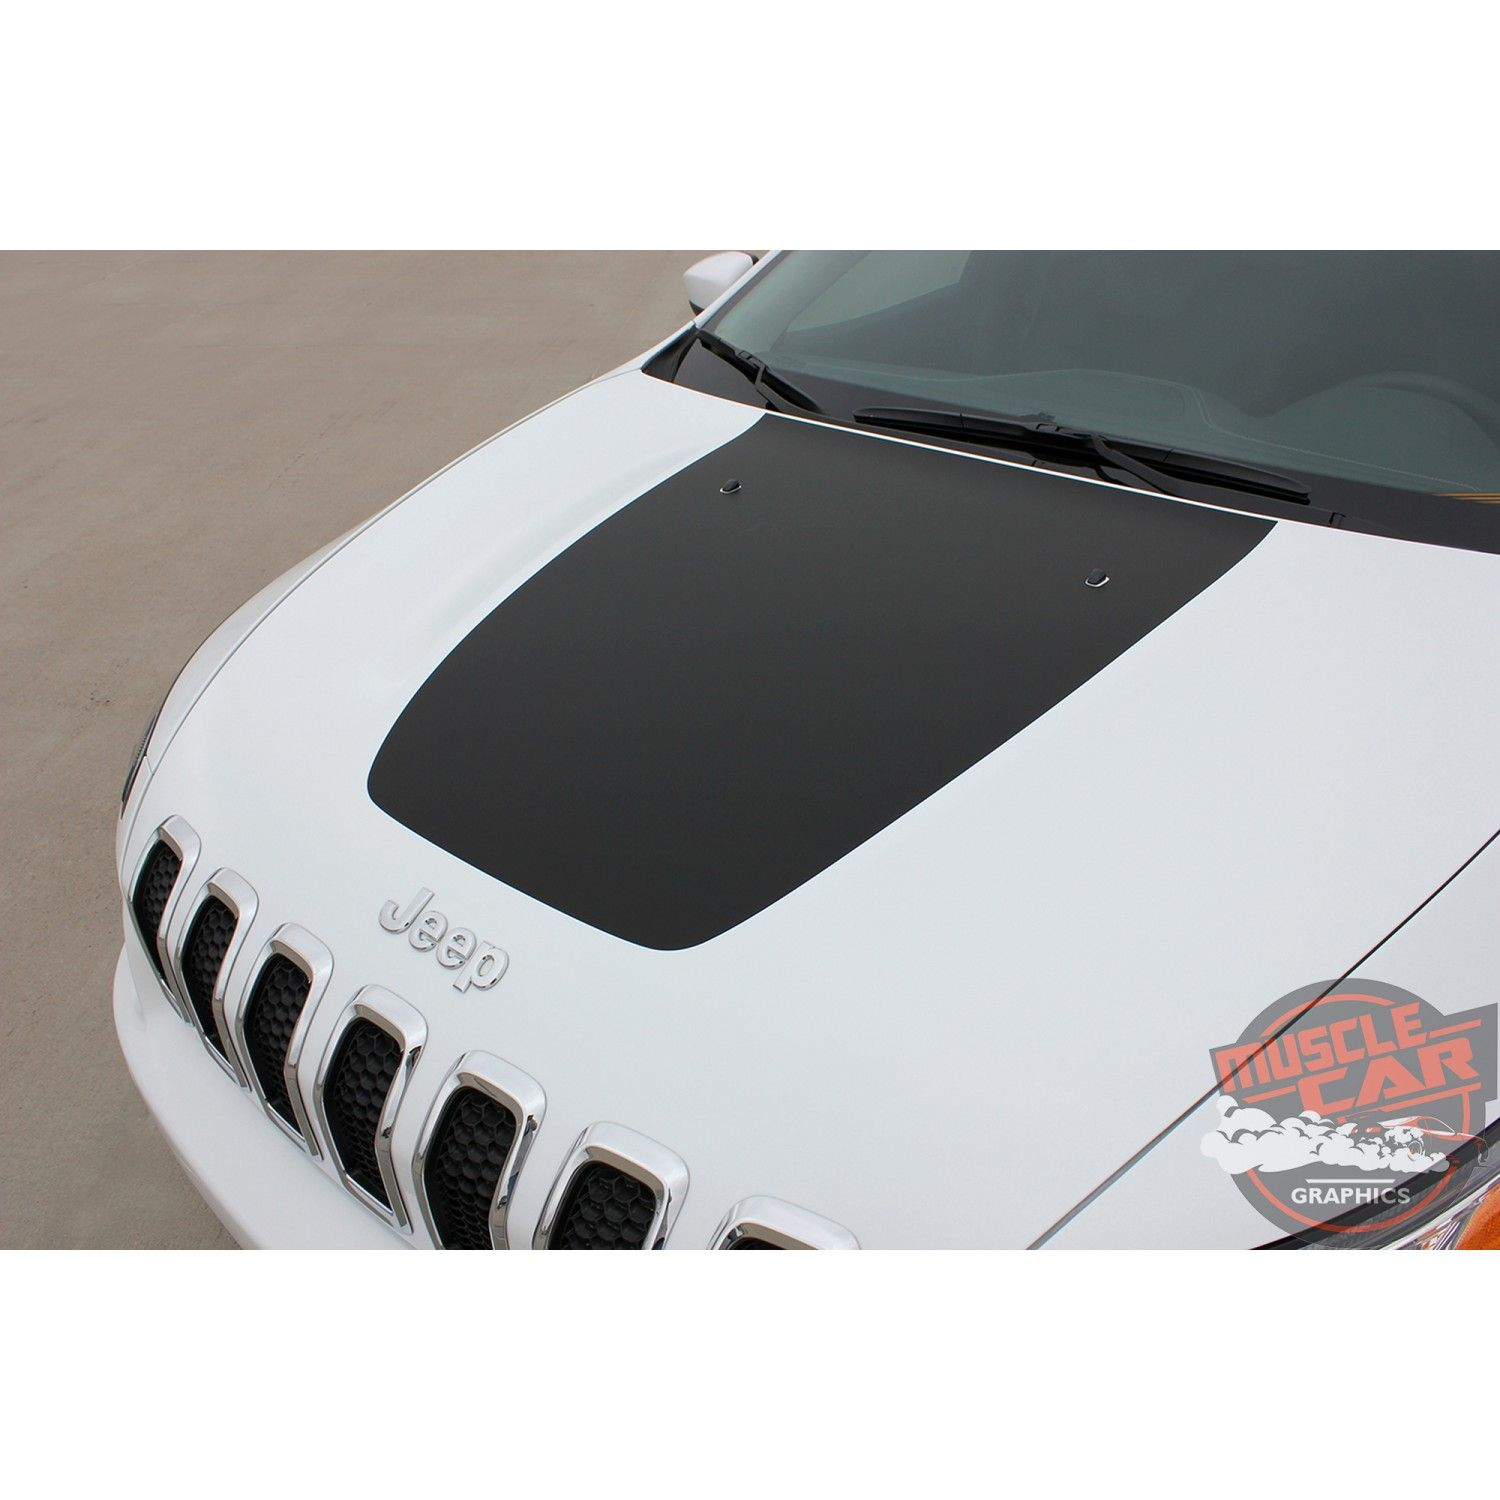 Jeep Cherokee T Hawk Trailhawk Hood Center Blackout Vinyl Graphics Decal Stripe Kit For 2013 2014 2015 2016 2017 2018 2019 2020 Jeep Cherokee Stripe Kit Vinyl